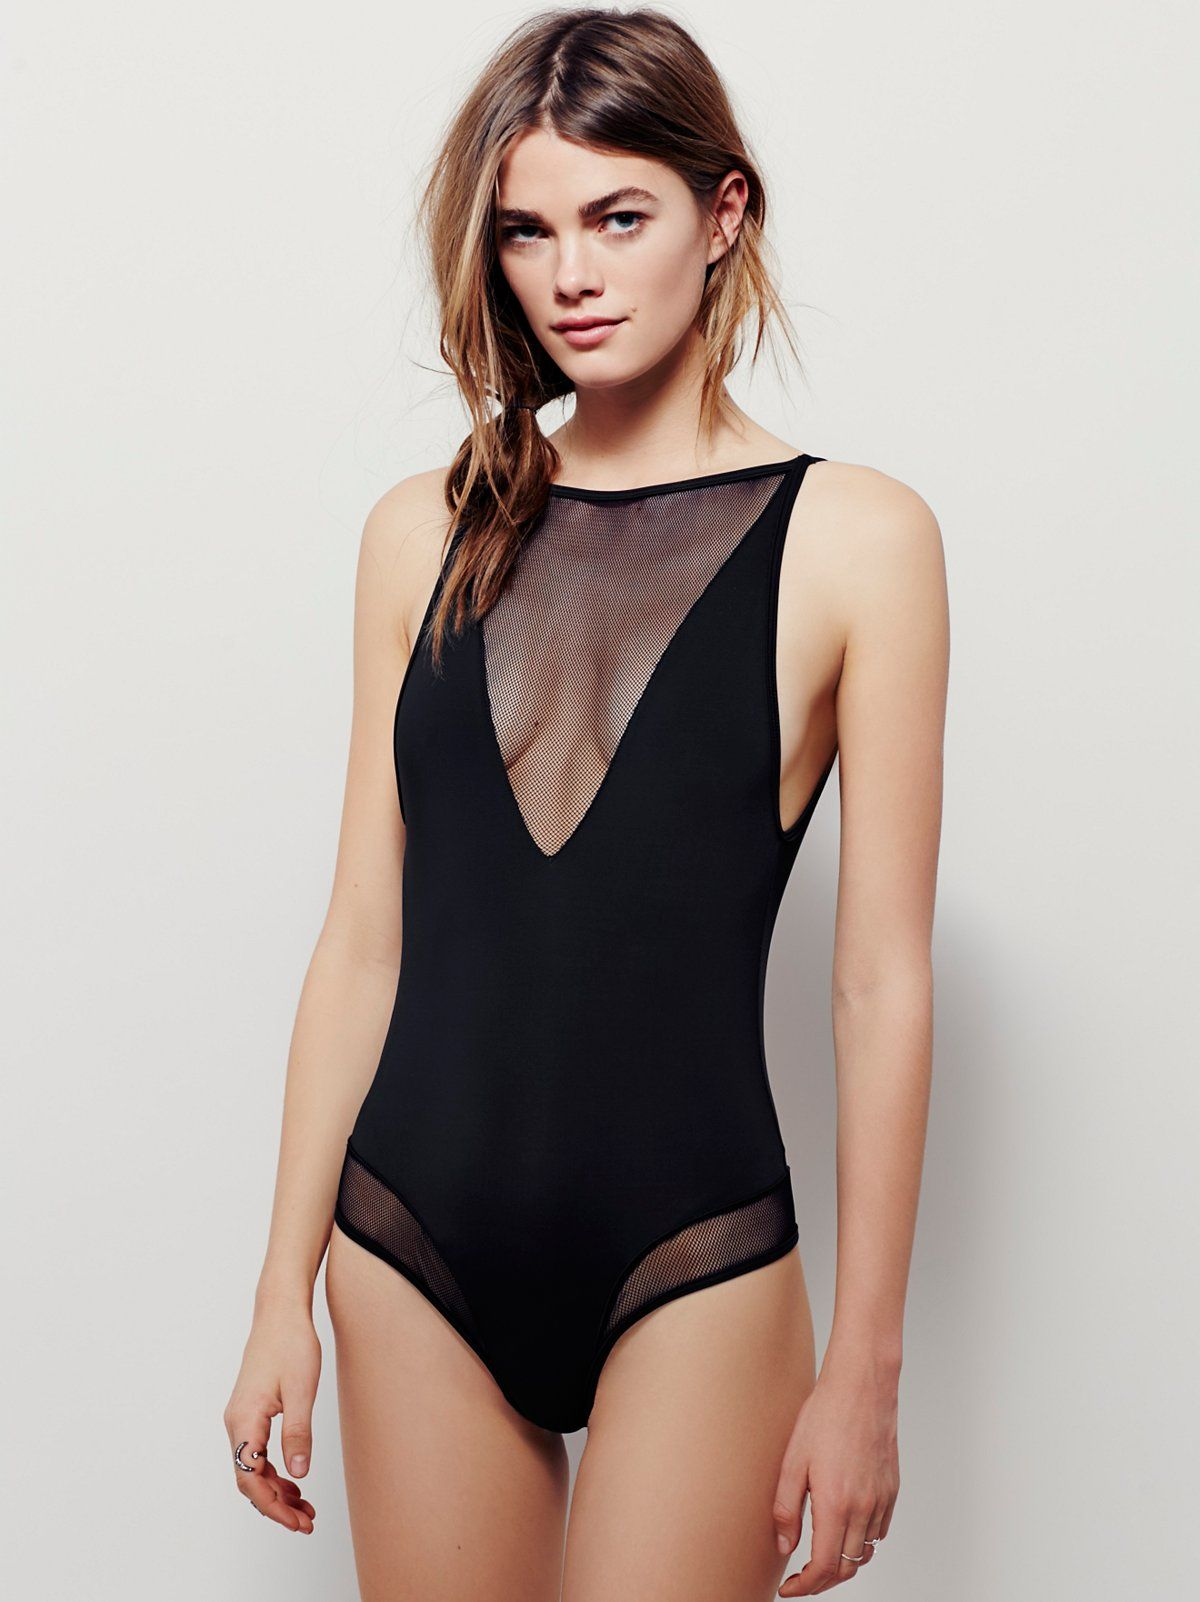 Lara Mesh Bodysuit | American made silky bodysuit featuring mesh trim with a V-neckline and a cheeky fit. Low open back. Adjustable straps.